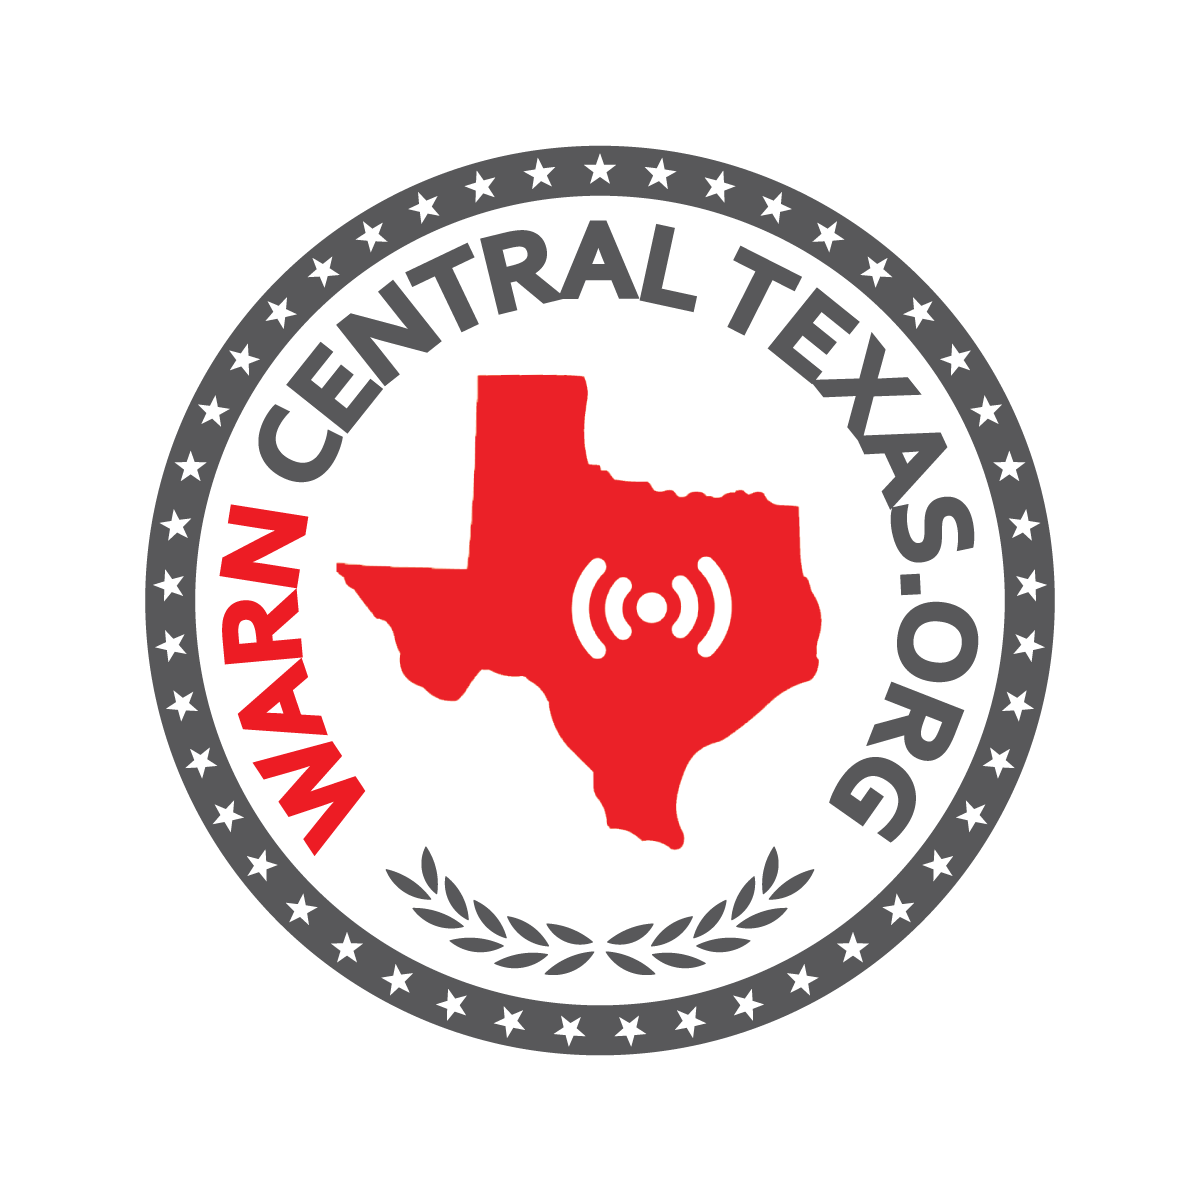 Warn Central Texas thumbnail logo